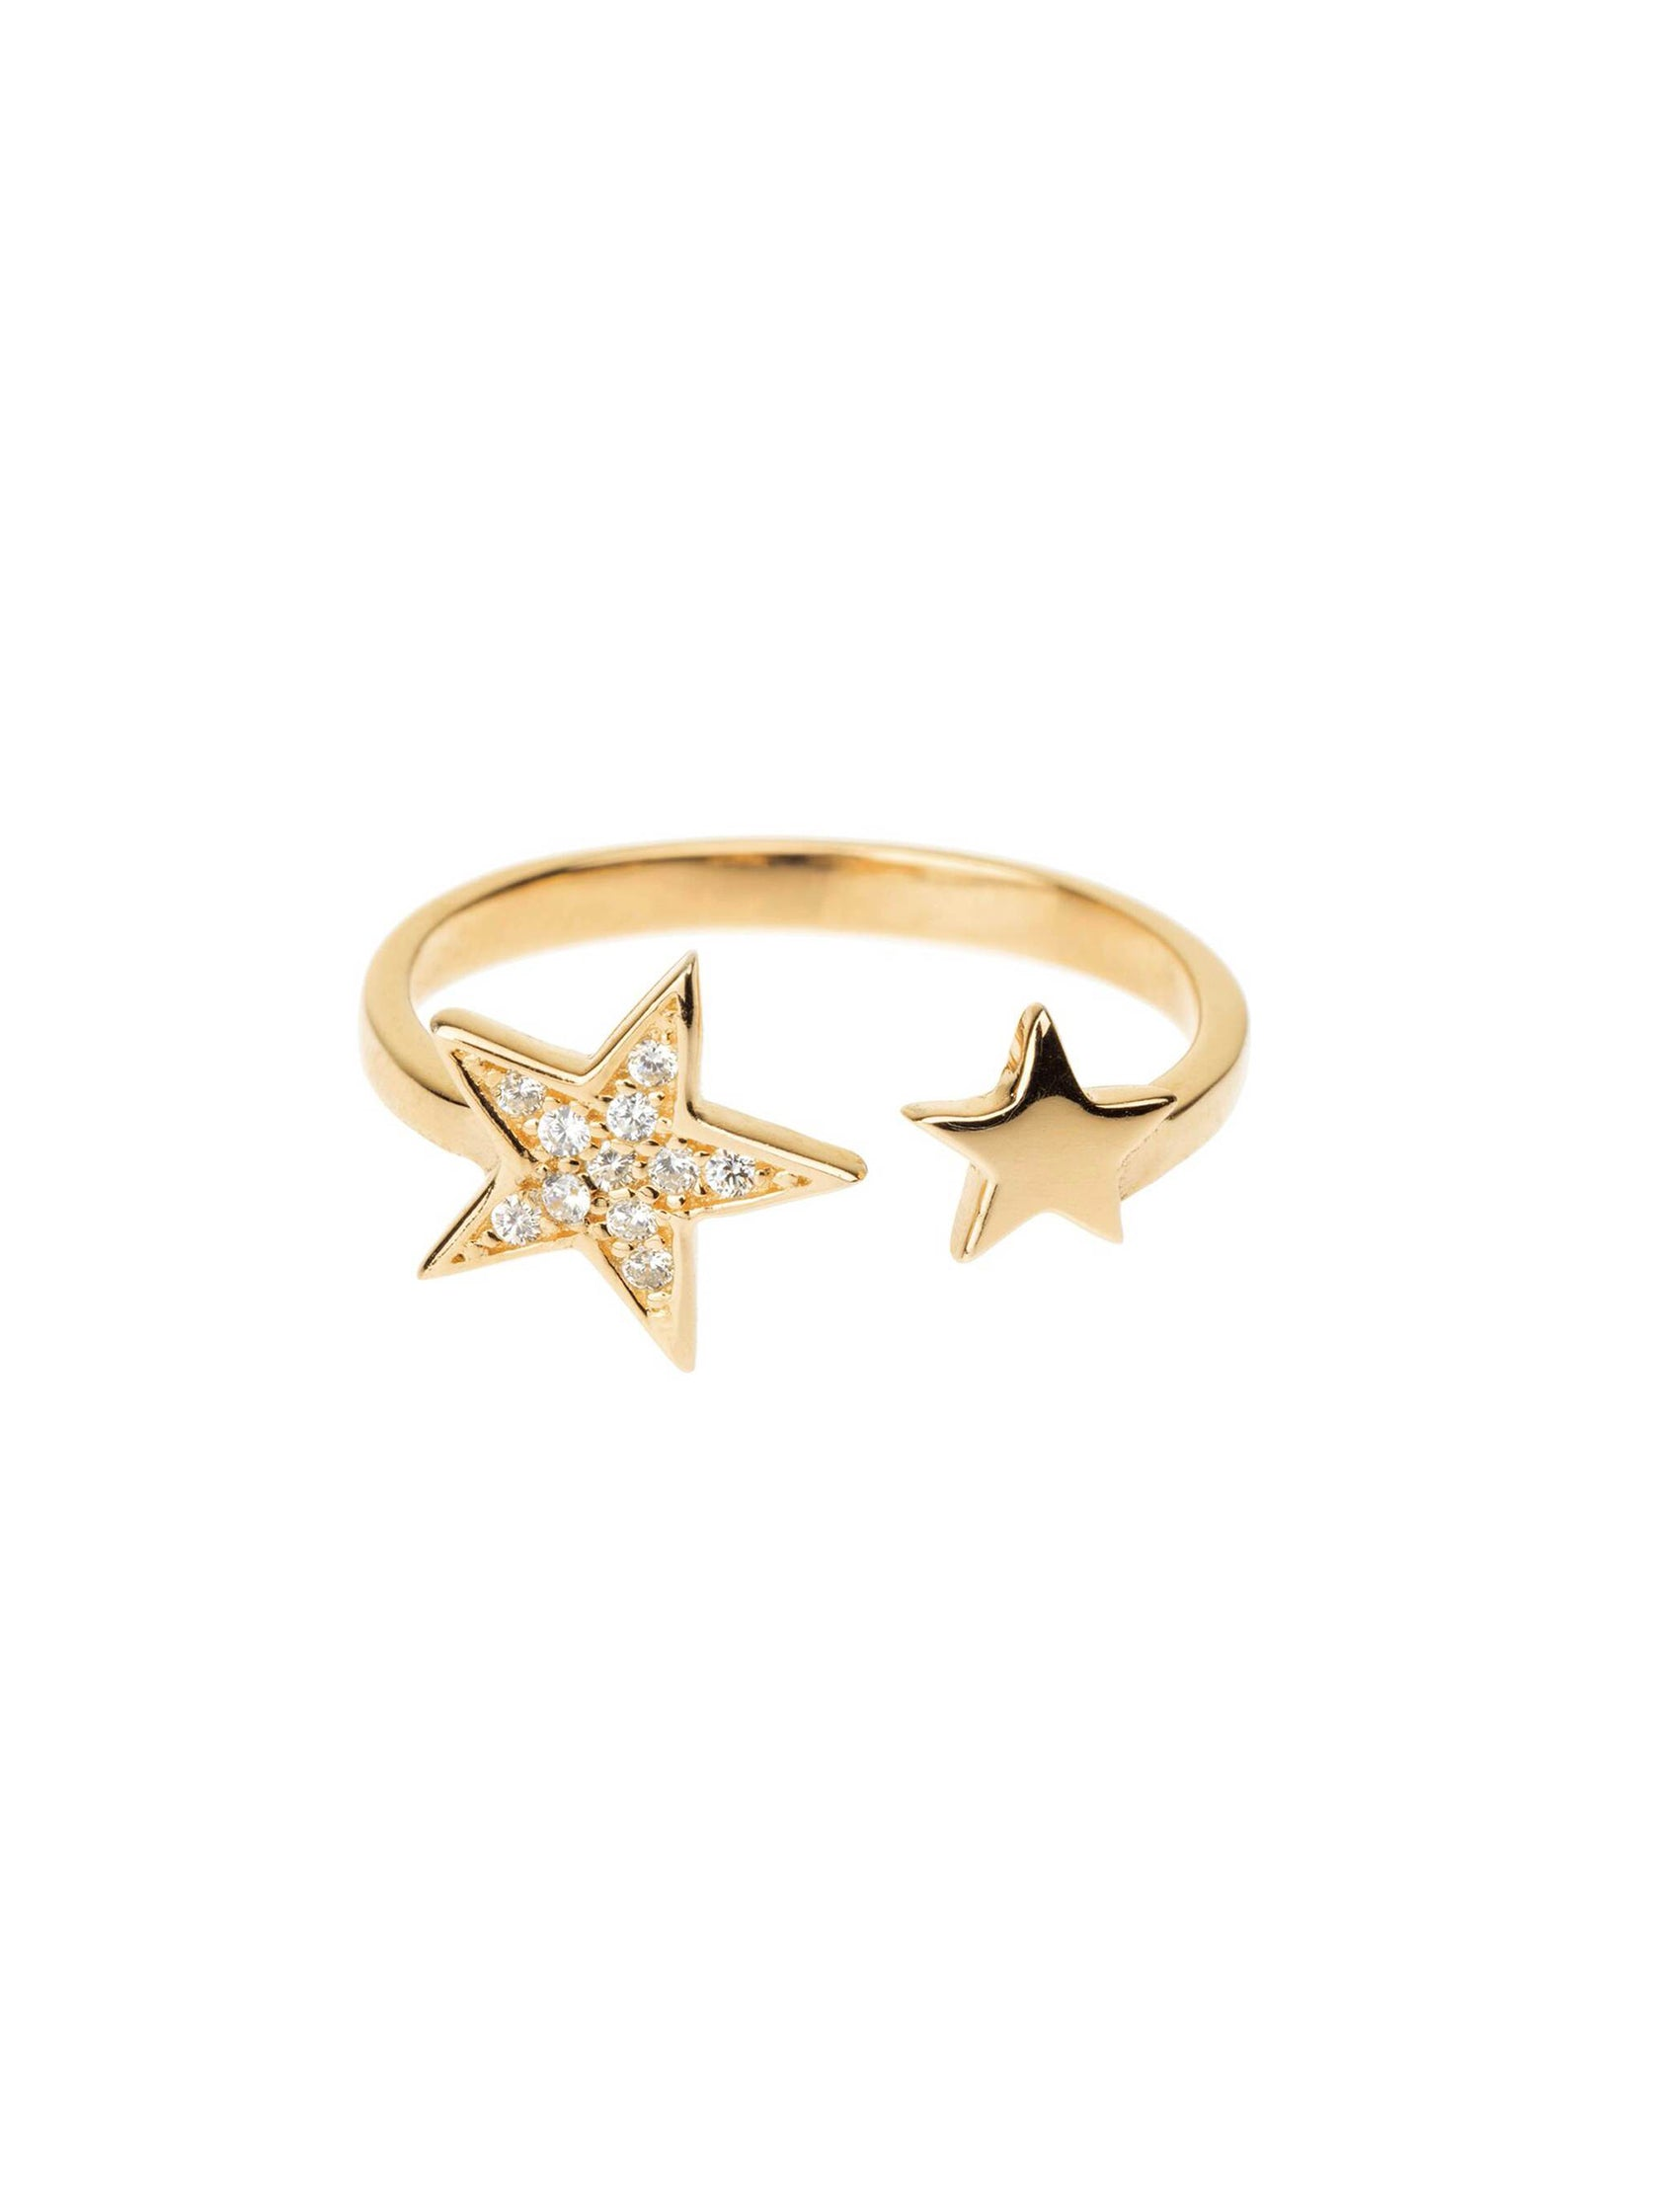 Women outfit in a ring rental from Shashi called Pave Star Adjustable Ring